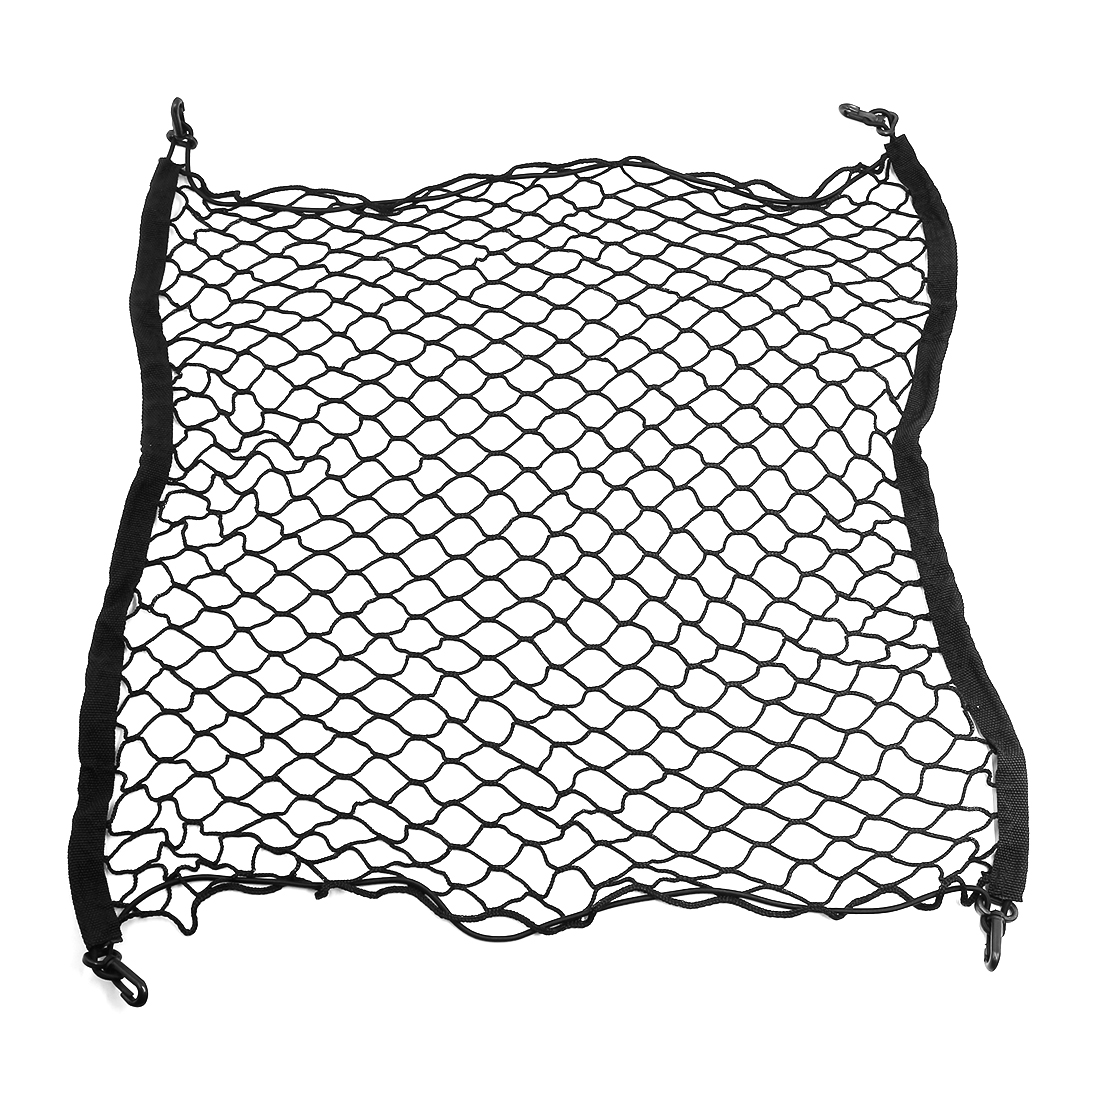 4 Hook Car Rear Trunk Cargo Luggage Storage Mesh Net Holder Black 70cm x 70cm